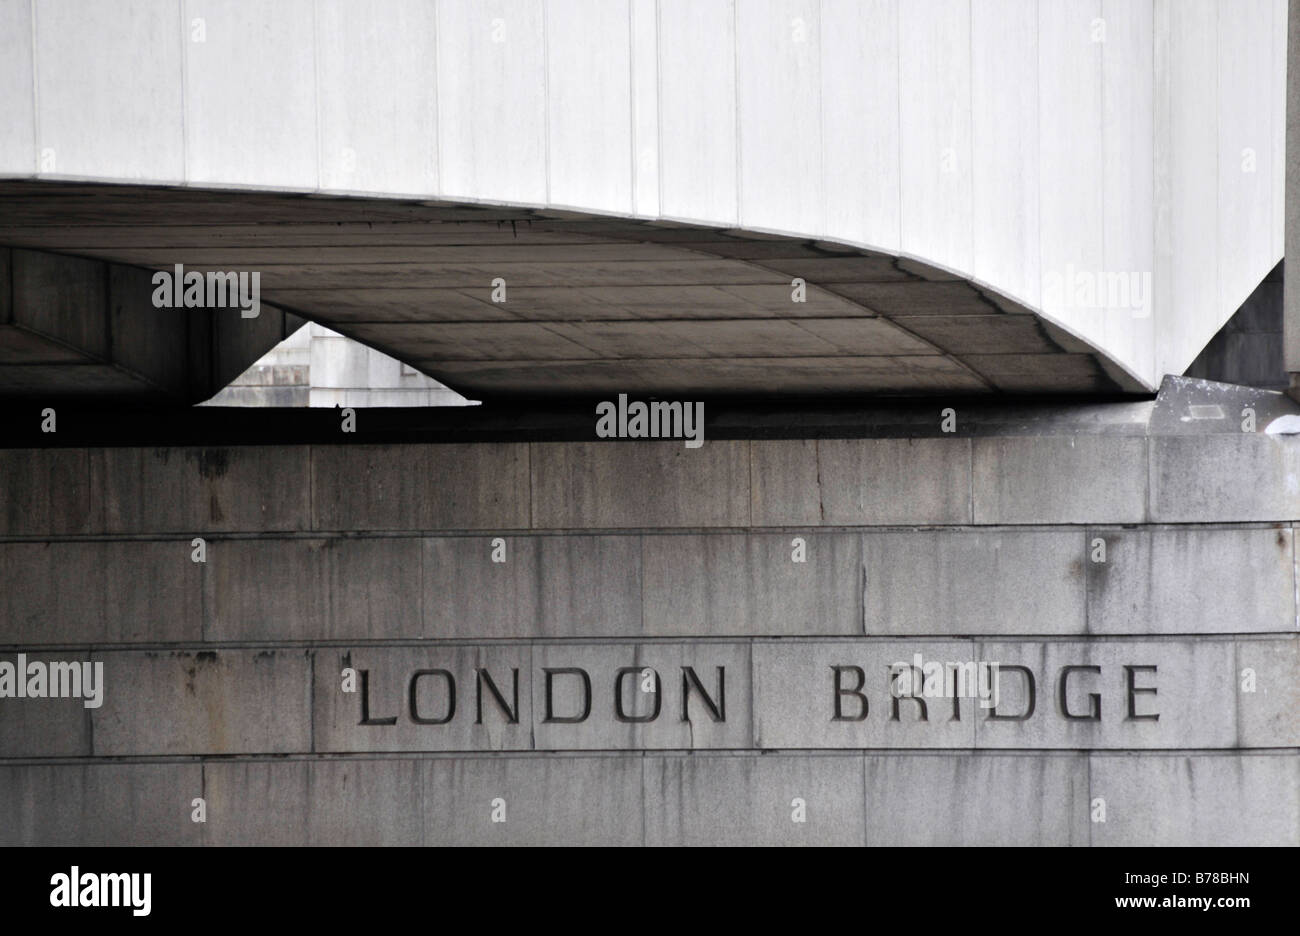 London Bridge writing on pillar stone - Stock Image